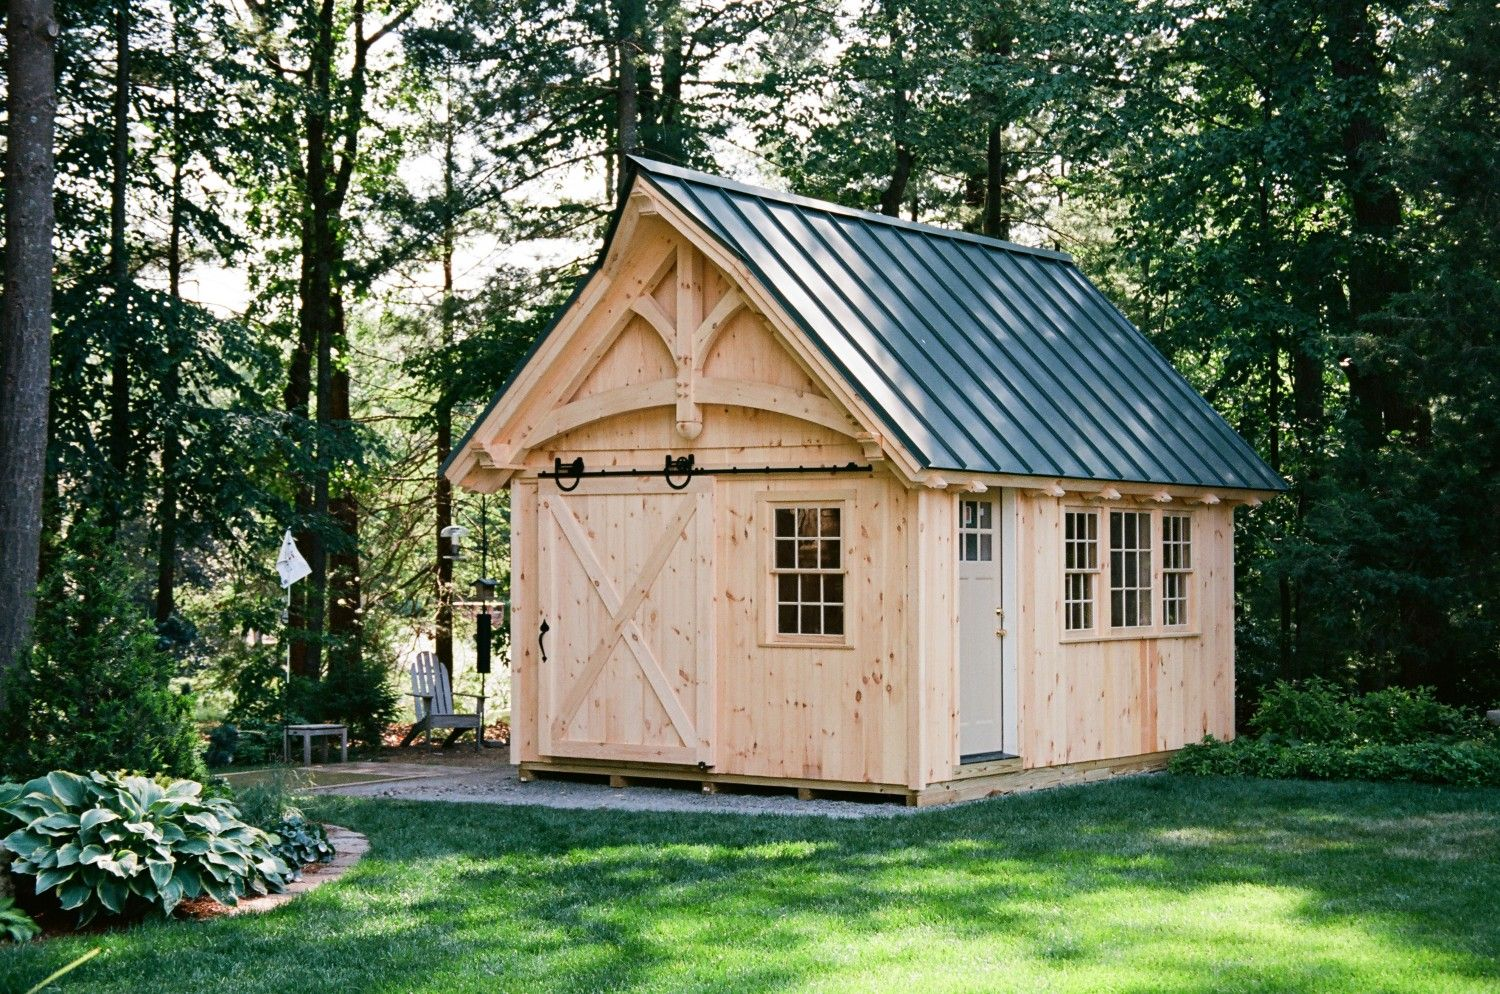 Grand Victorian Timber Frame Shed: The Barn Yard & Great